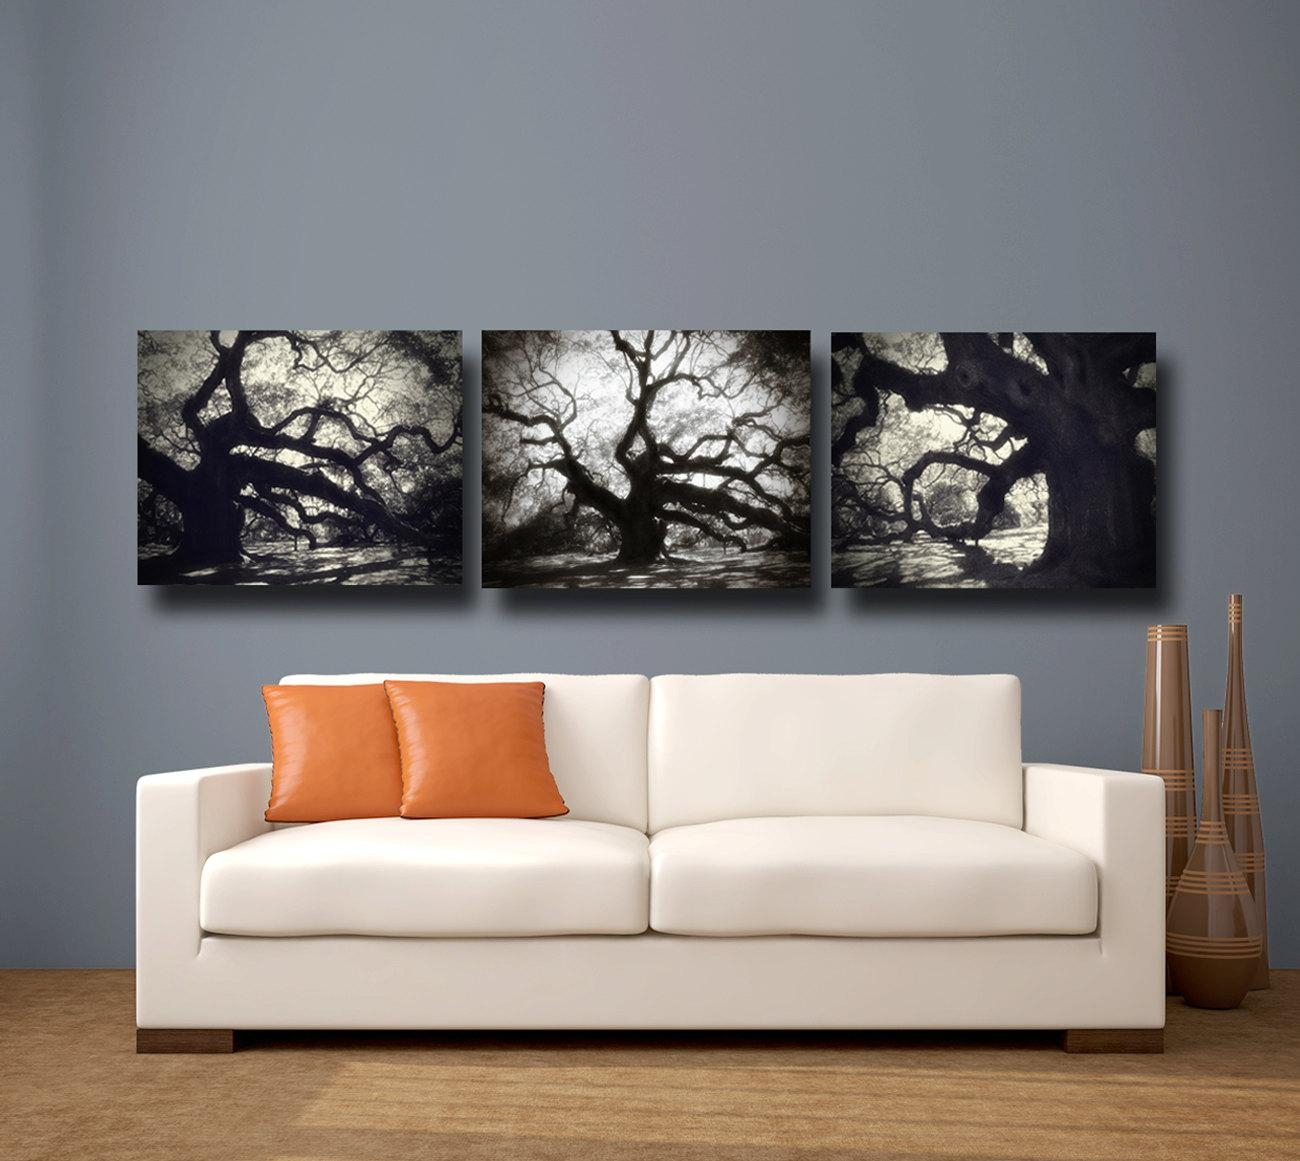 Black And White Wall Art Awesome Exterior Dining Room Of Black And In Cheap Black And White Wall Art (Image 4 of 20)